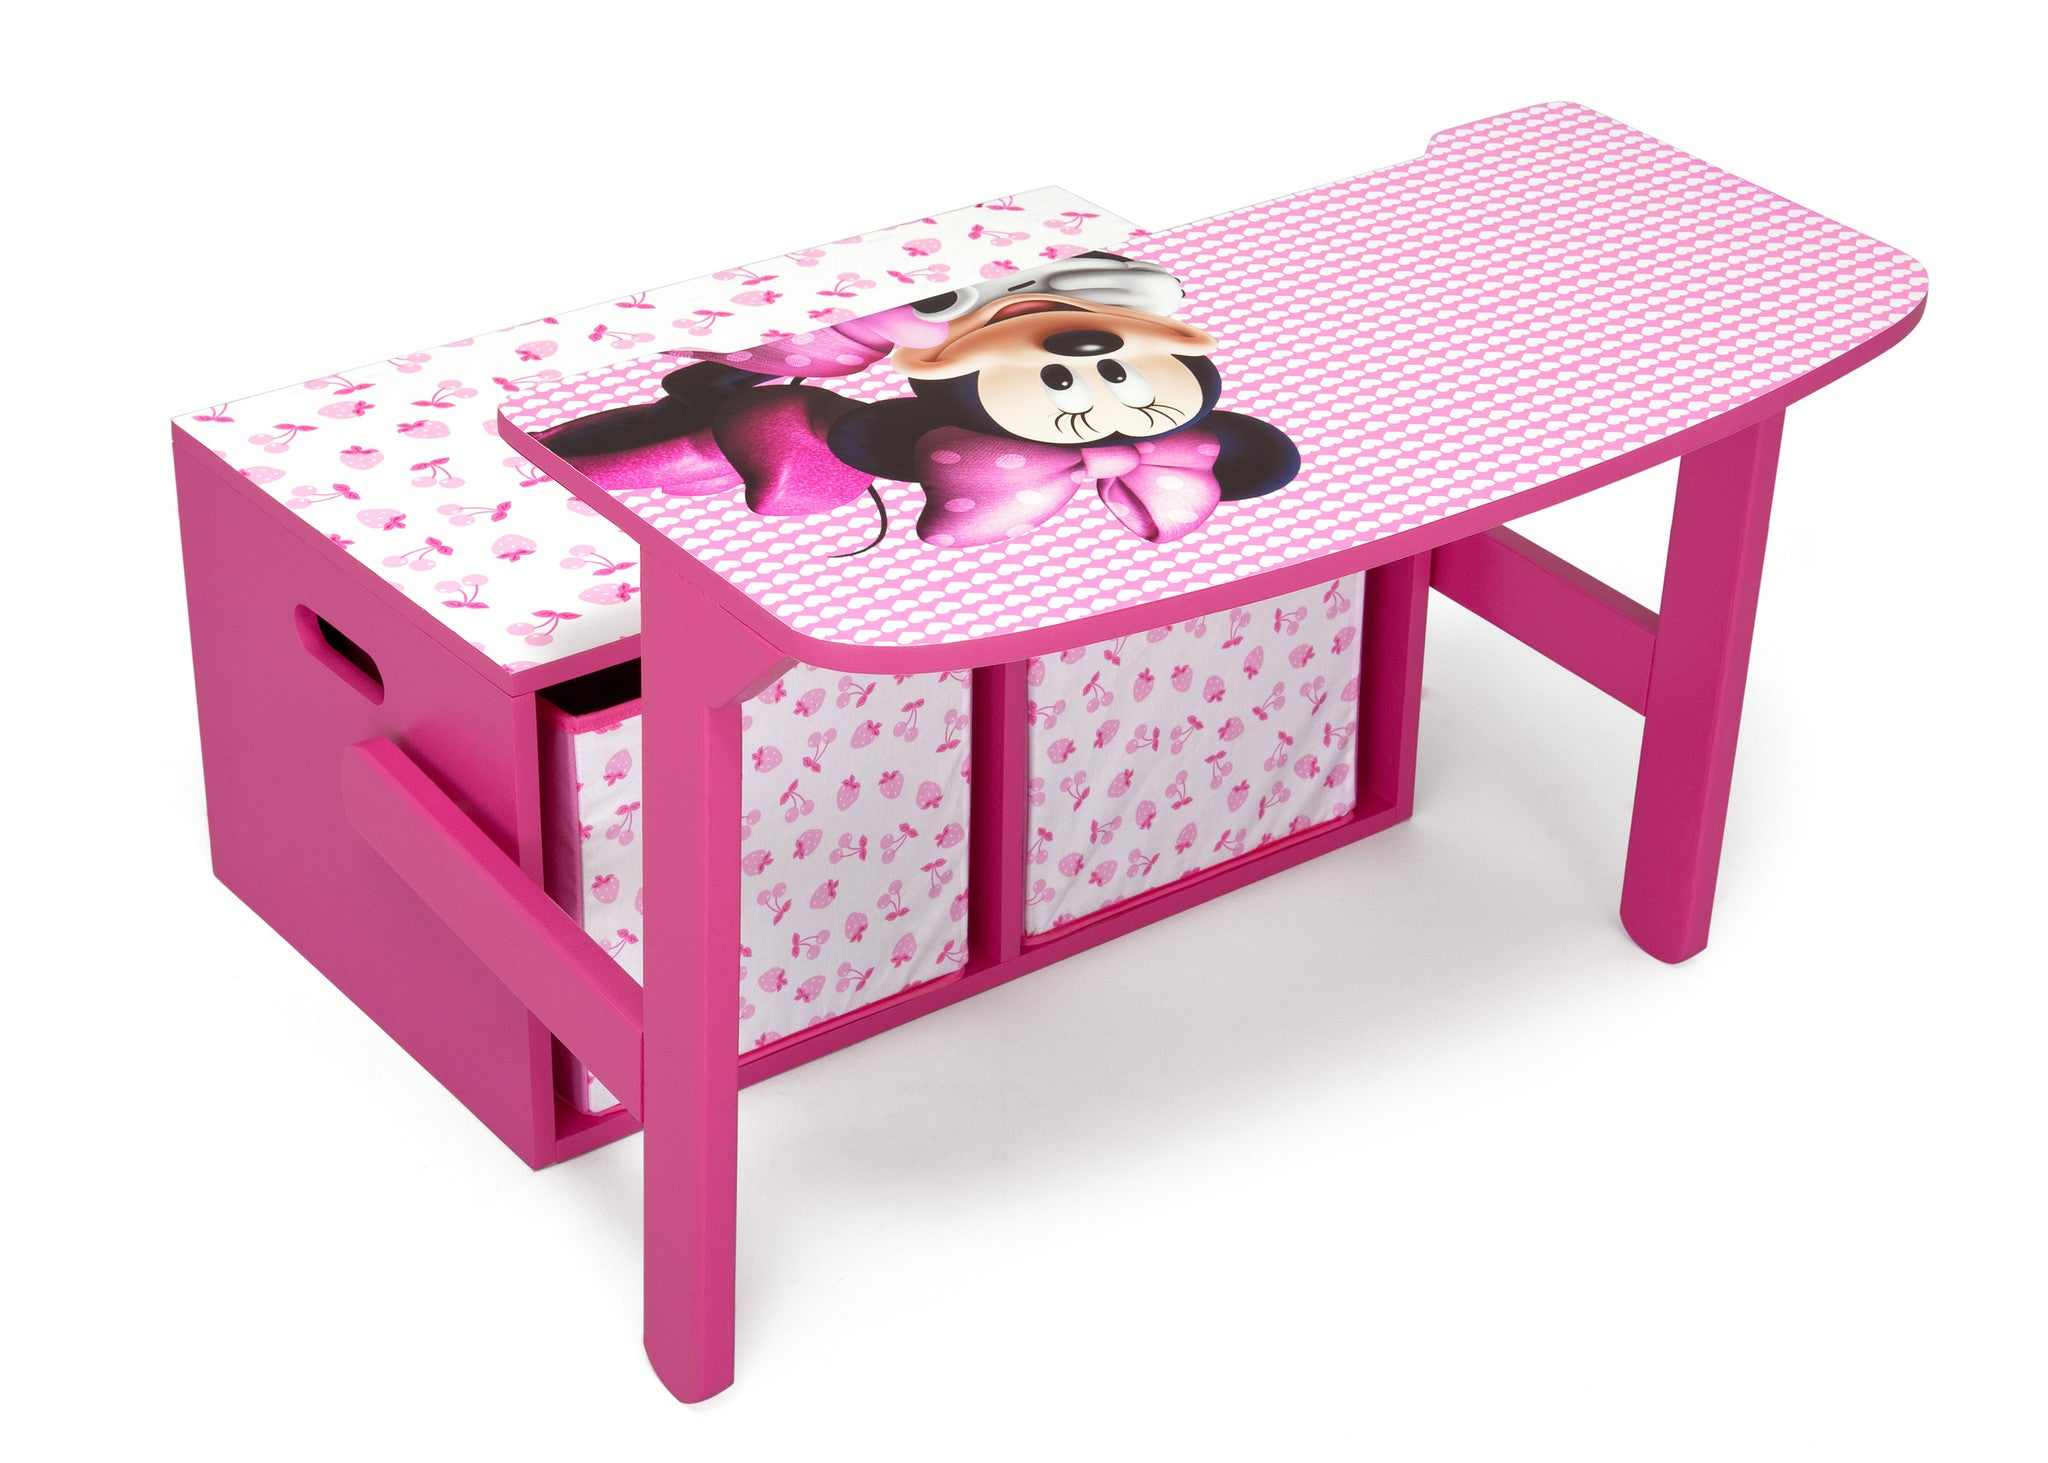 Minnie Mouse 3 In 1 Storage Bench And Desk